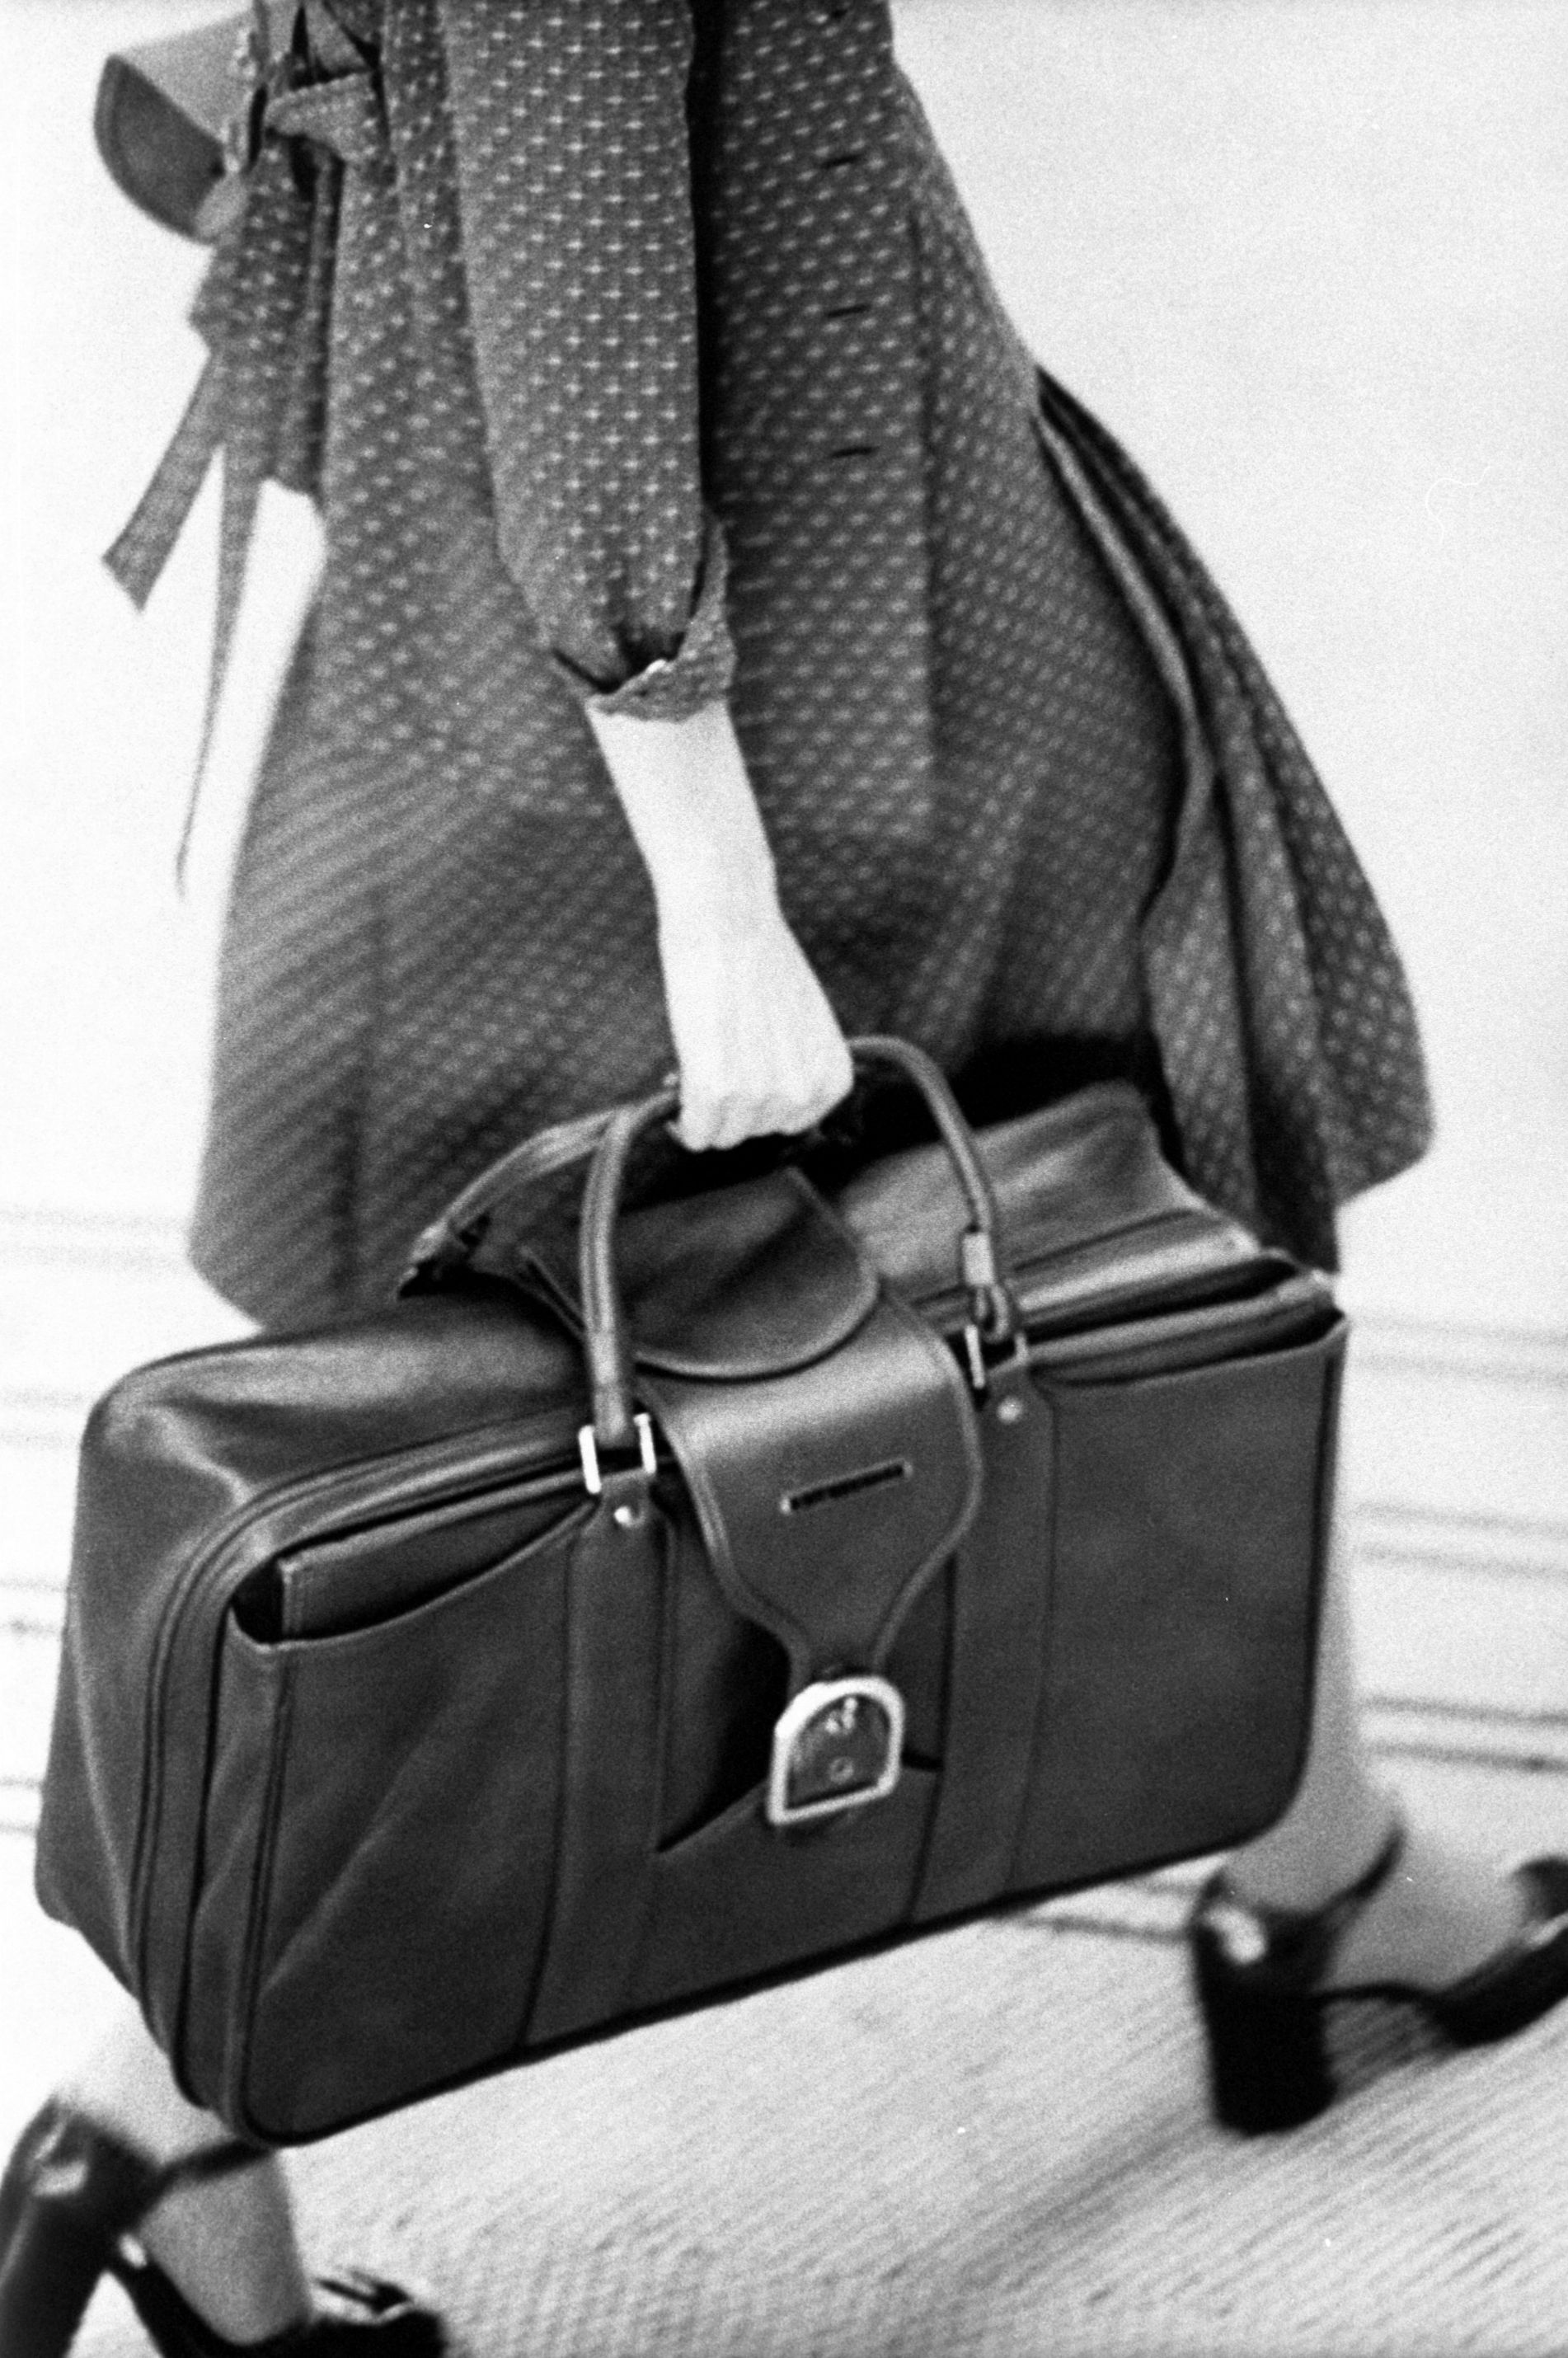 a6fddbef7f2 The Most Popular Handbag the Year You Were Born — History of Purses